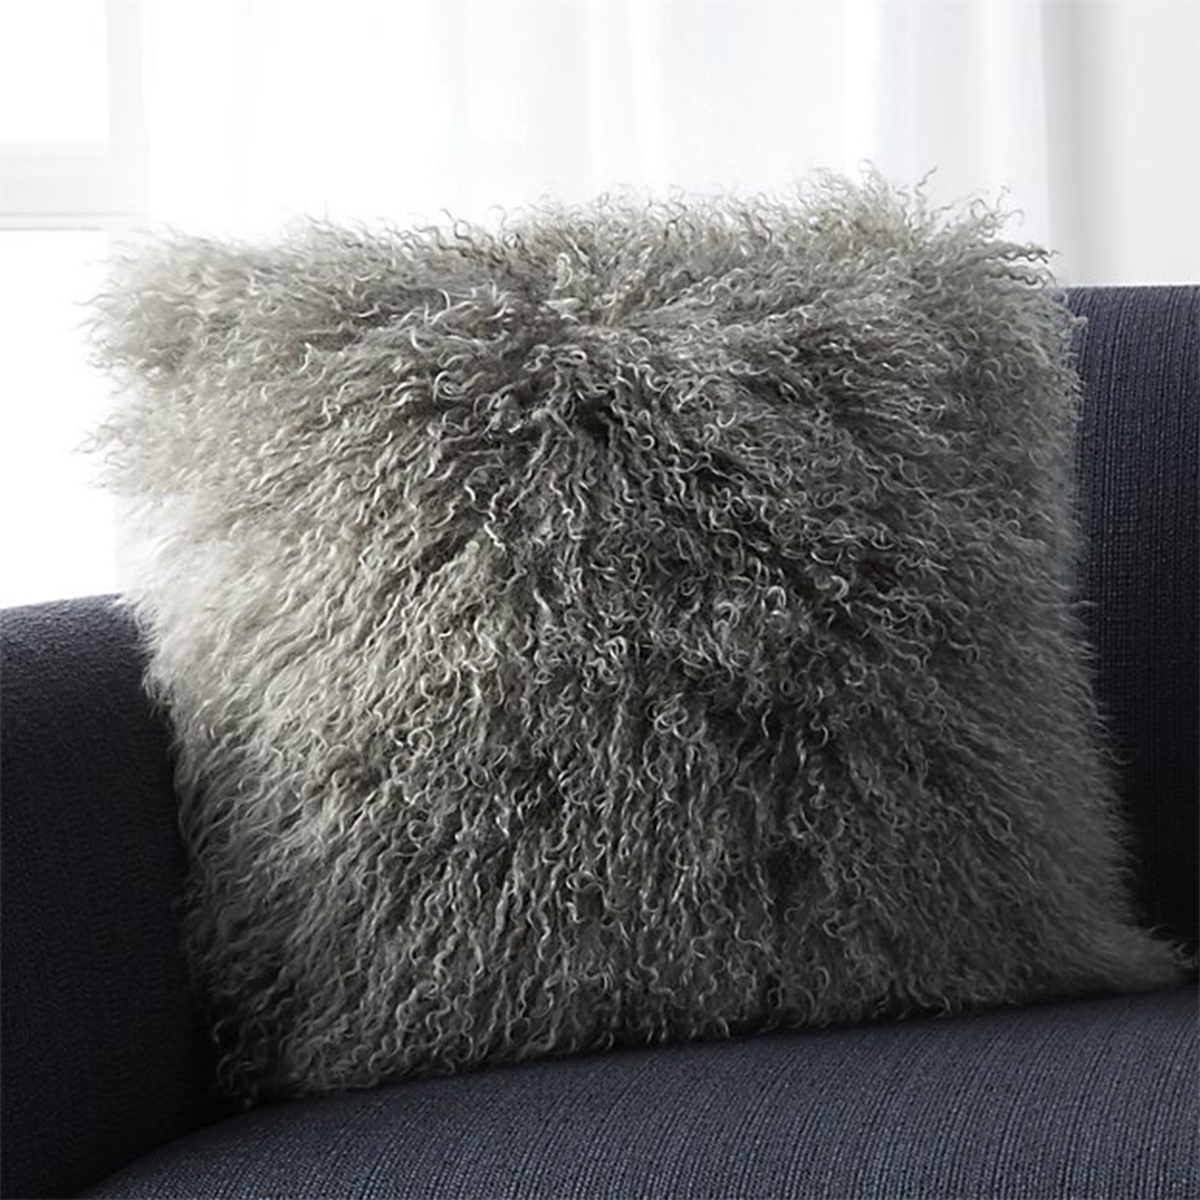 Oversized pillow with gray shag fabric photo